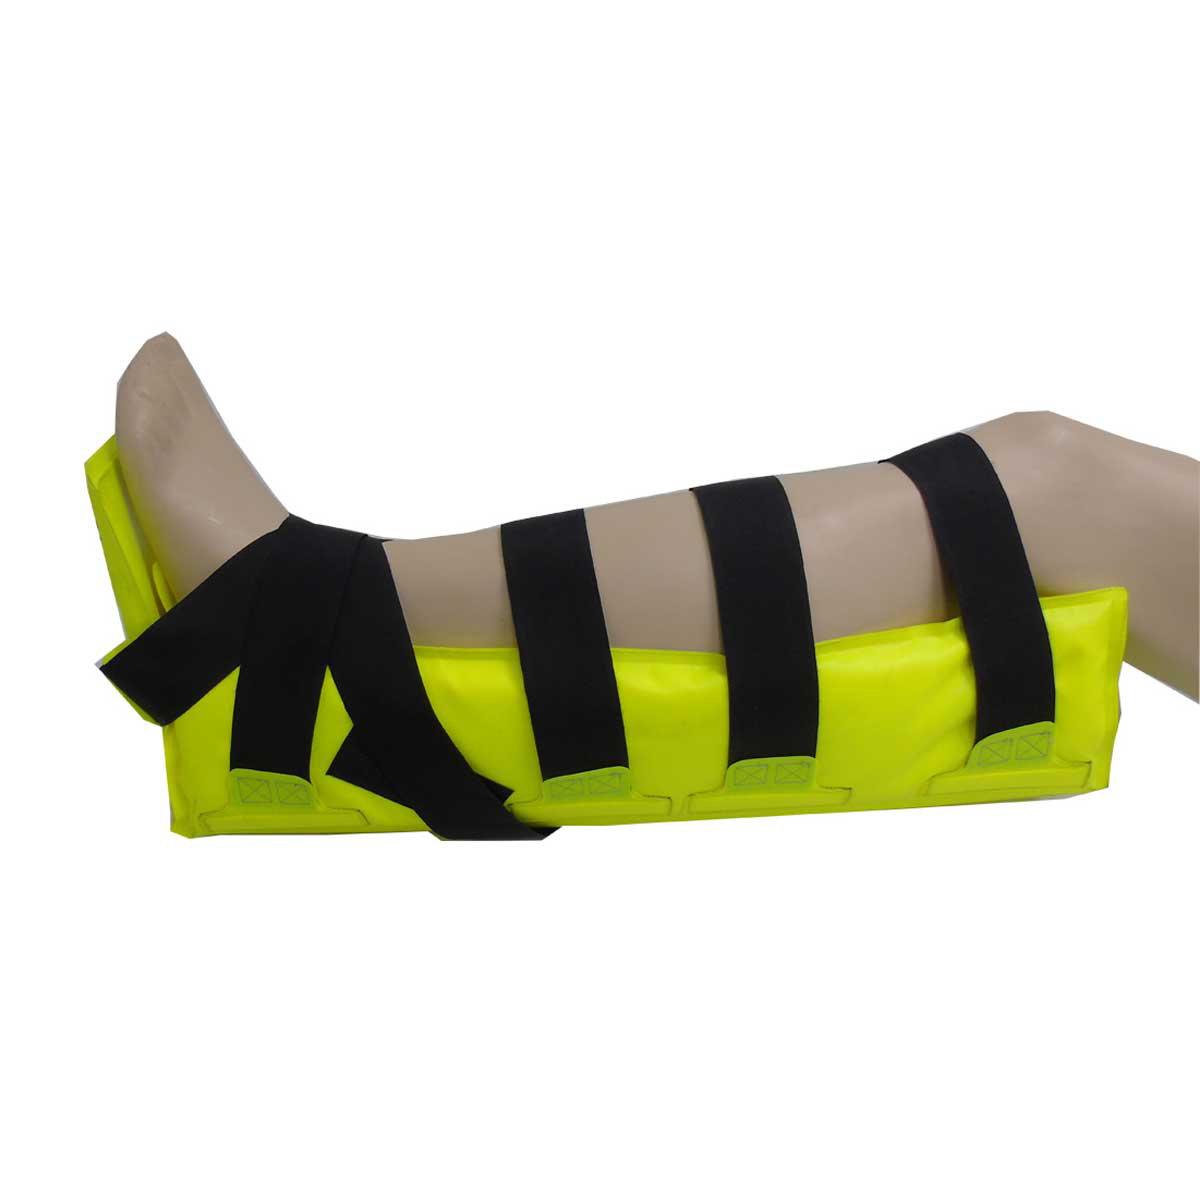 Medium Leg Box Splint showing leg position